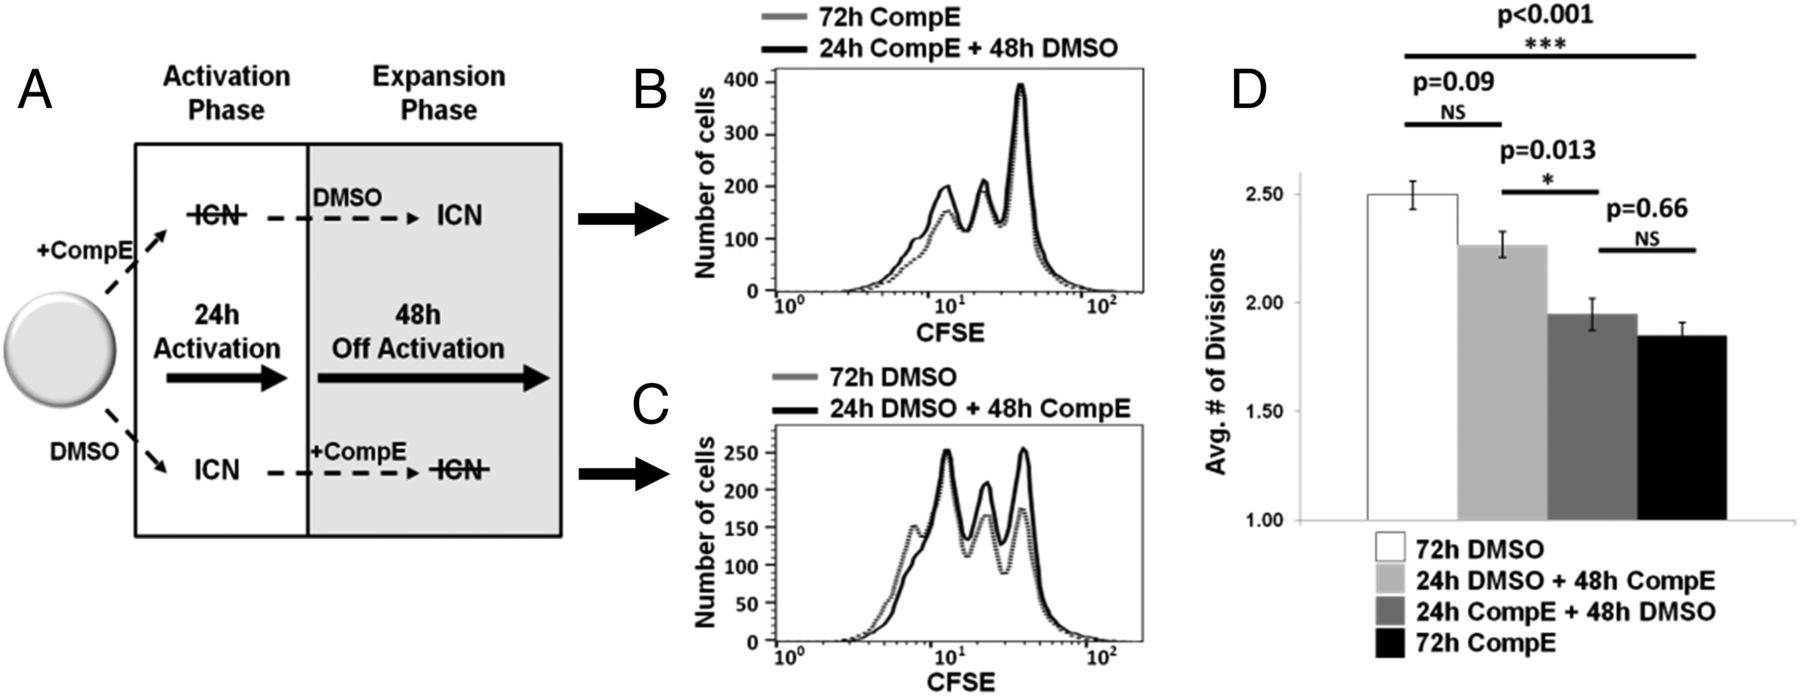 Novel TCR-Mediated Mechanisms of Notch Activation and